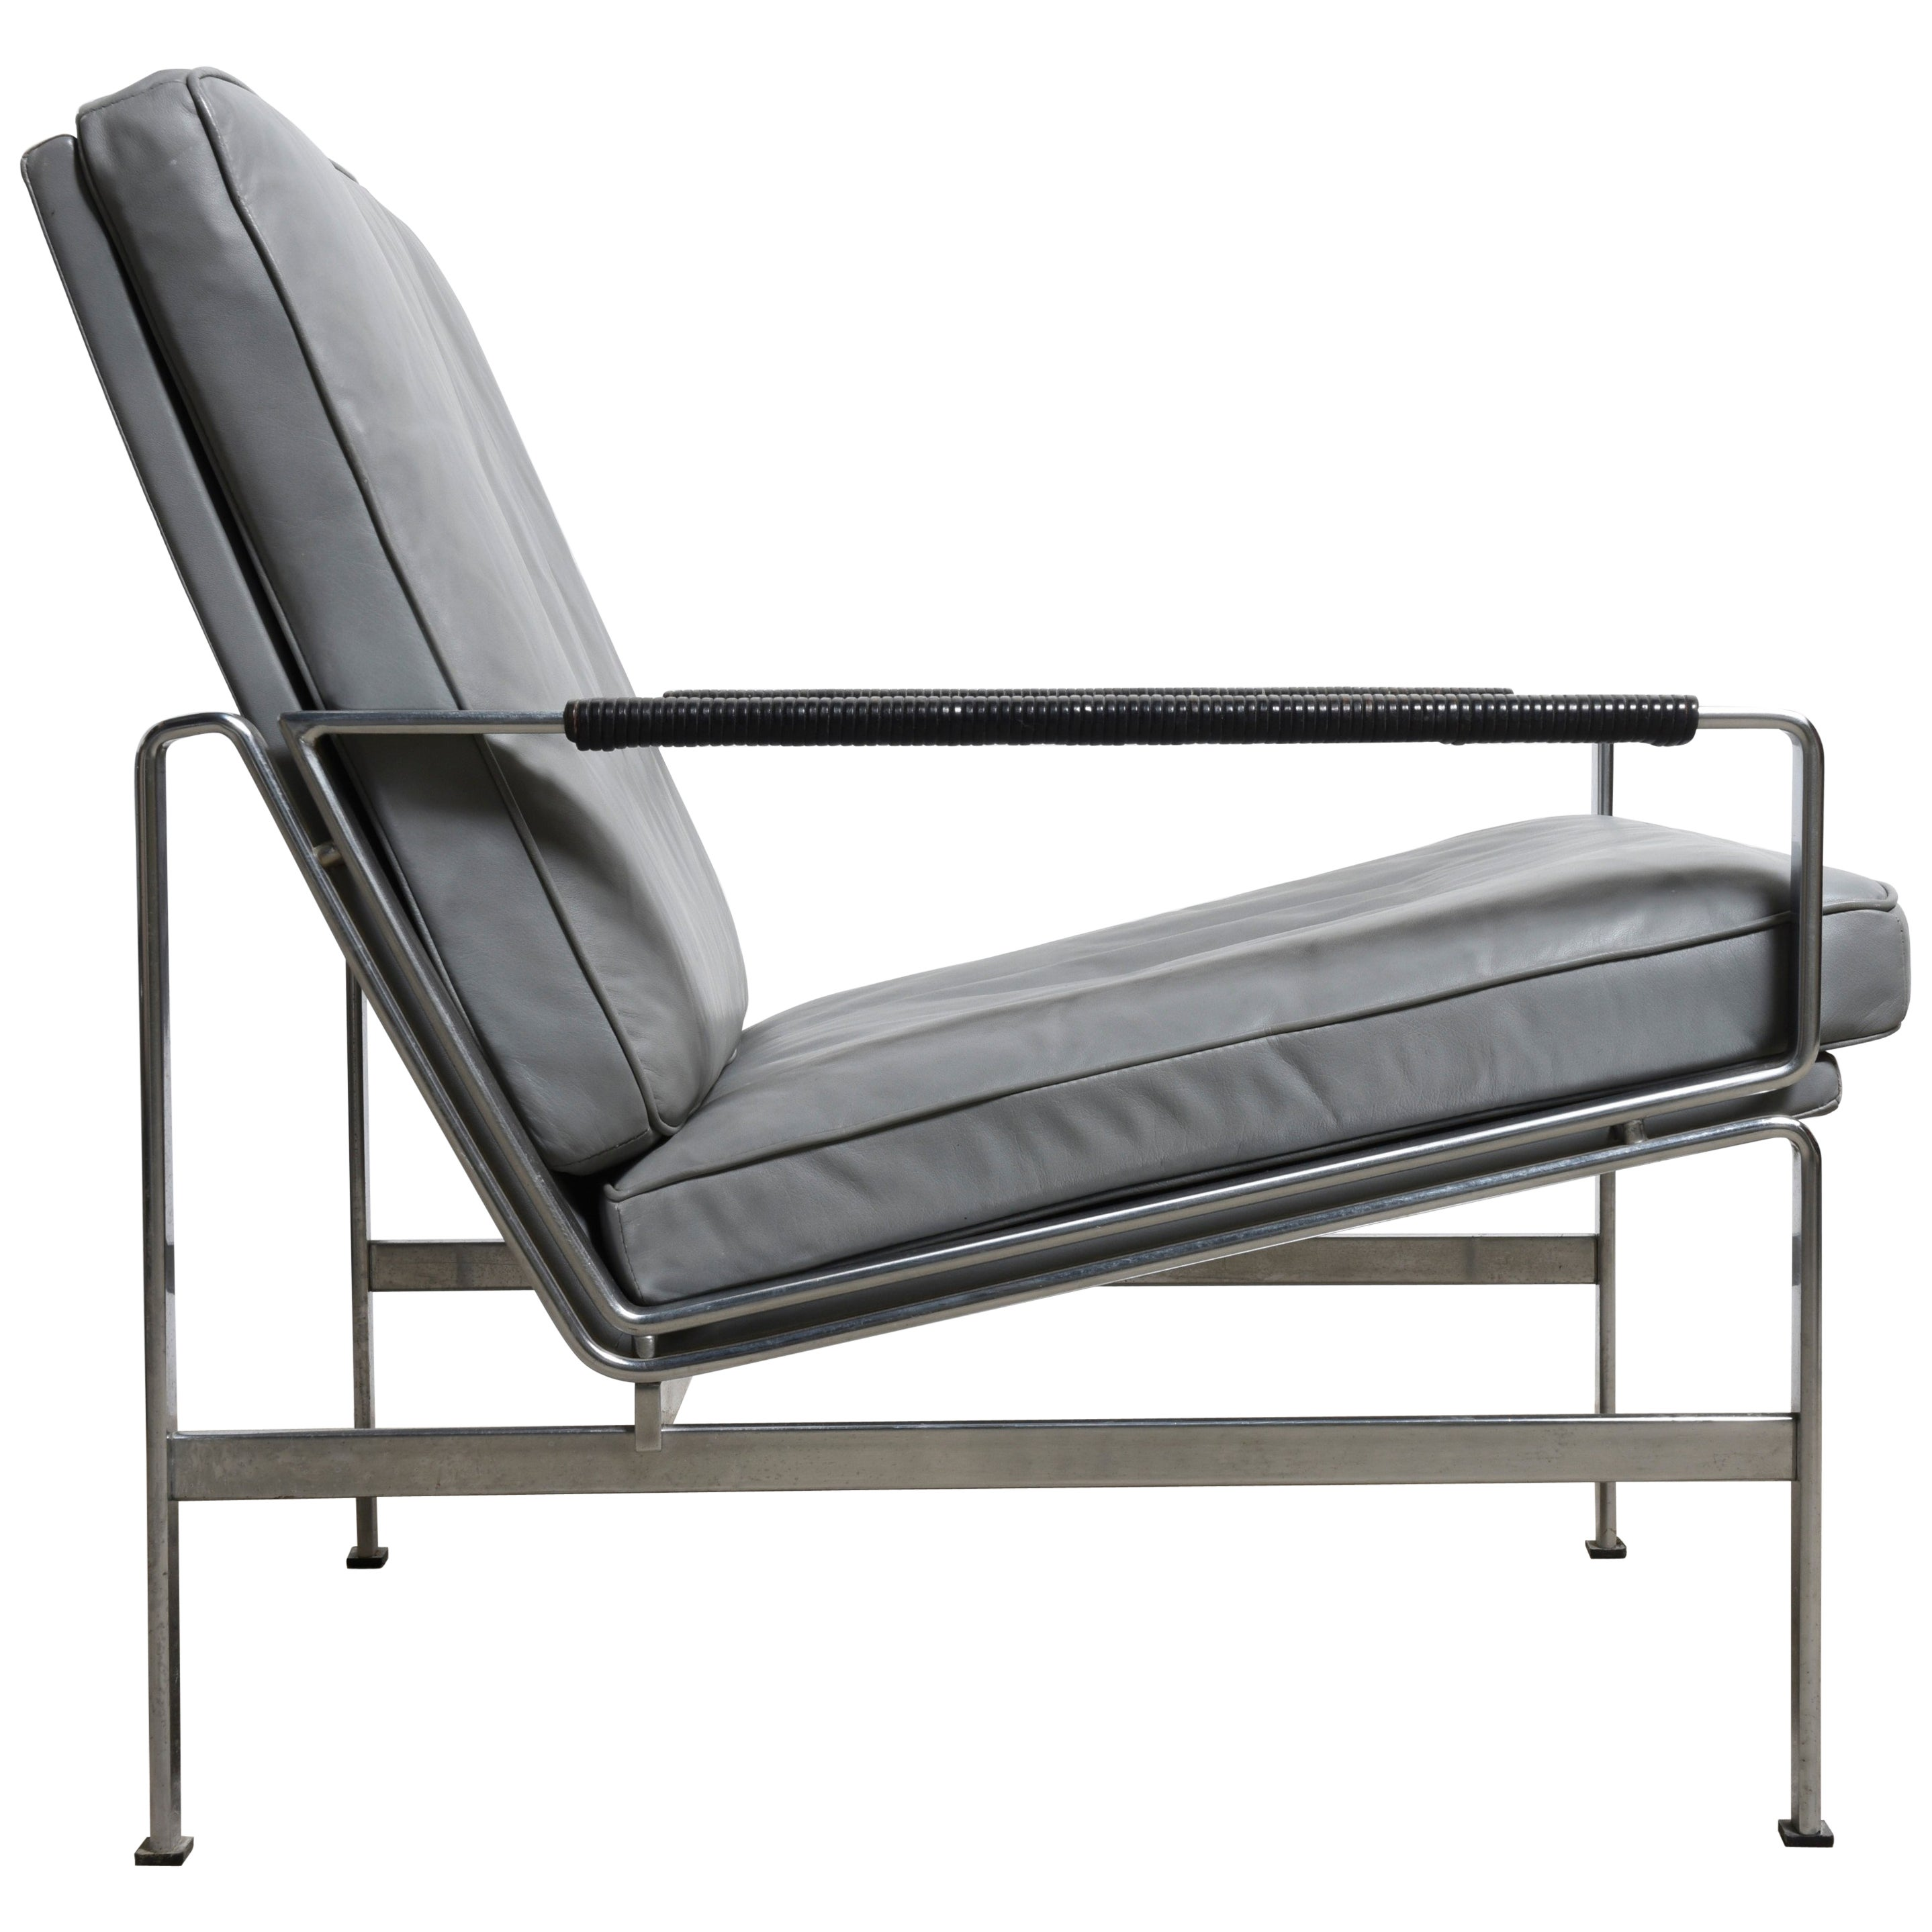 FK 6720 Classics of Midcentury Modernism Lounge Chair by Fabricius and Kastholm